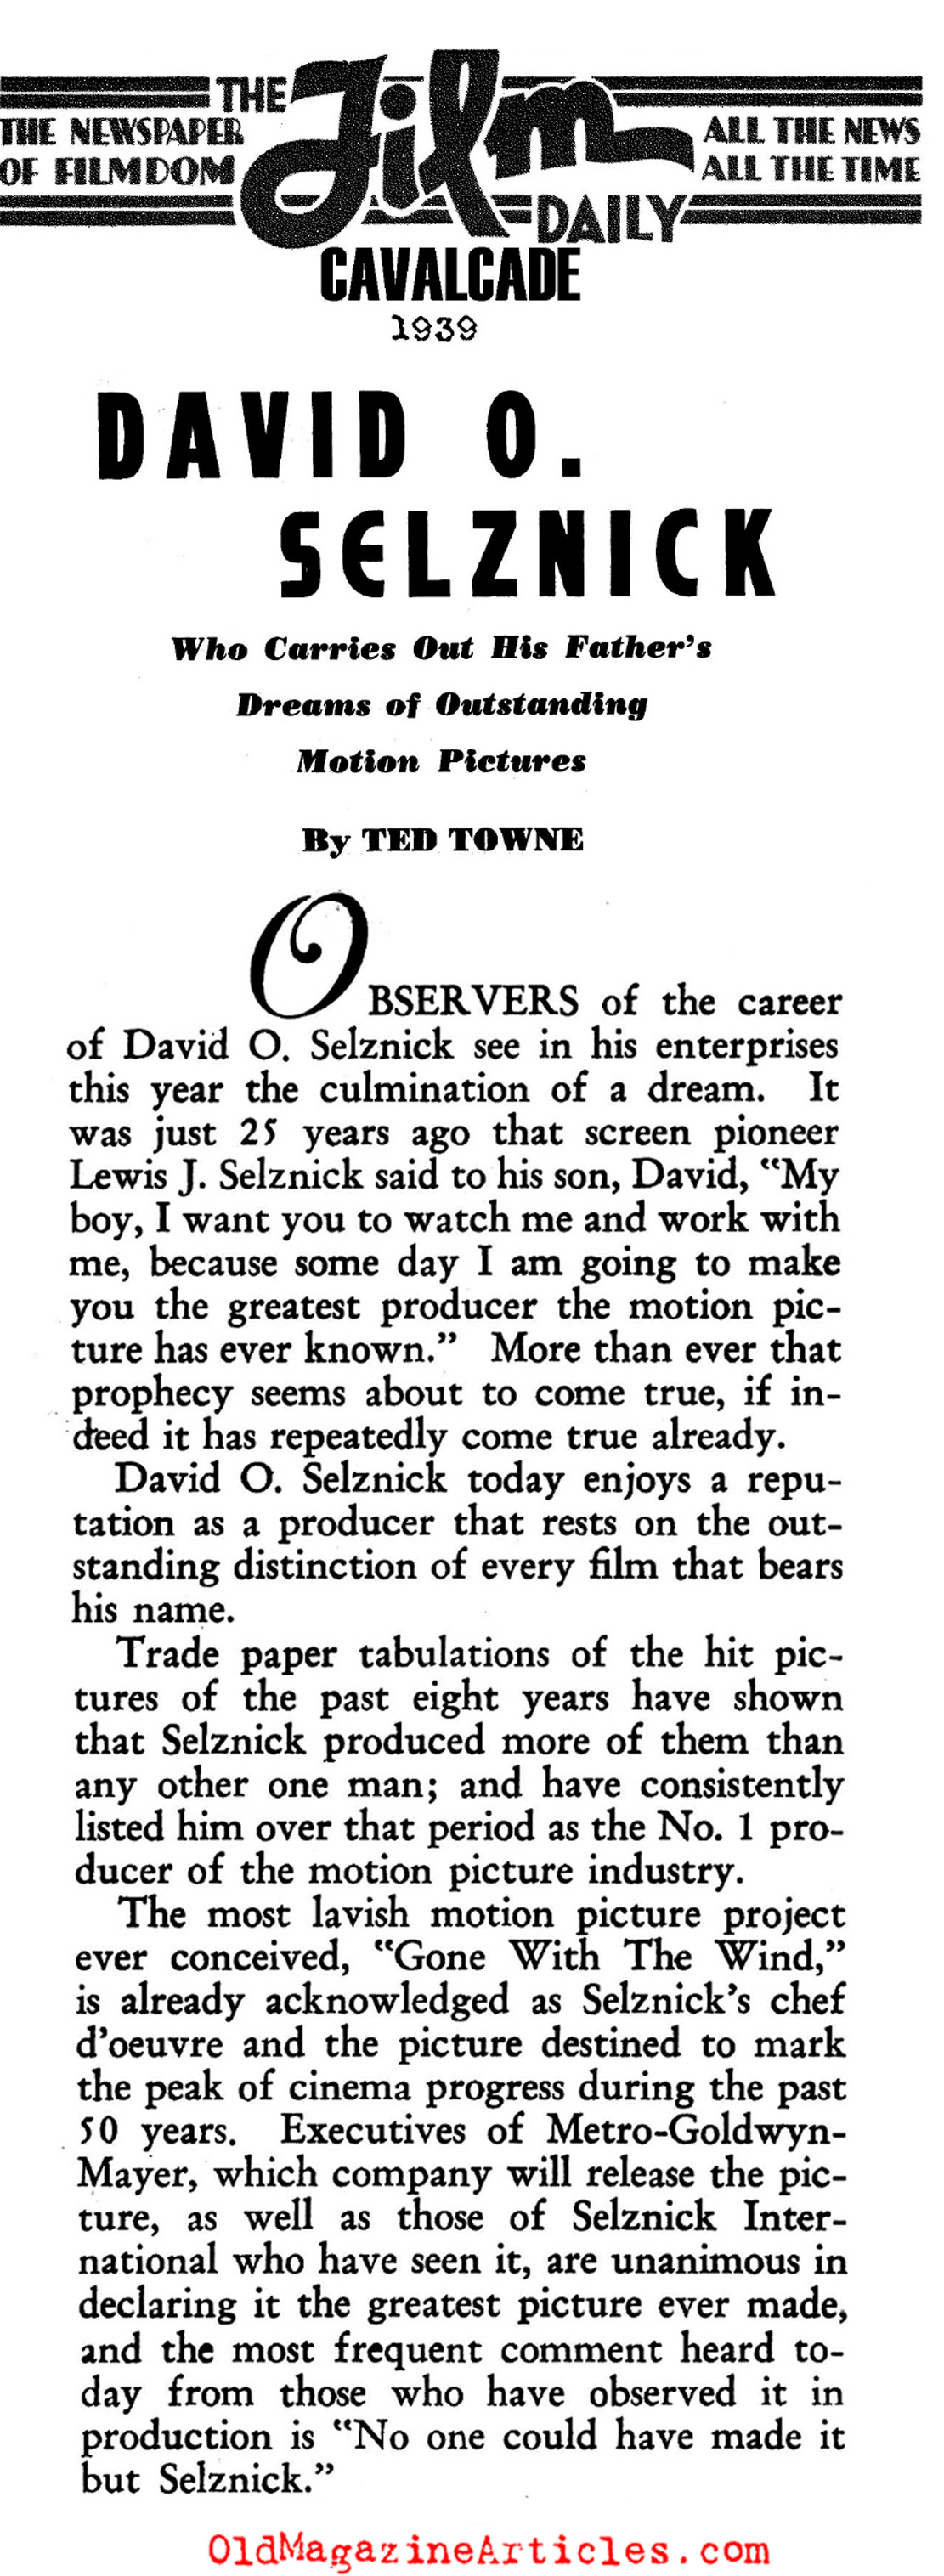 The Producer: David O. Selznick (Film Daily, 1939)